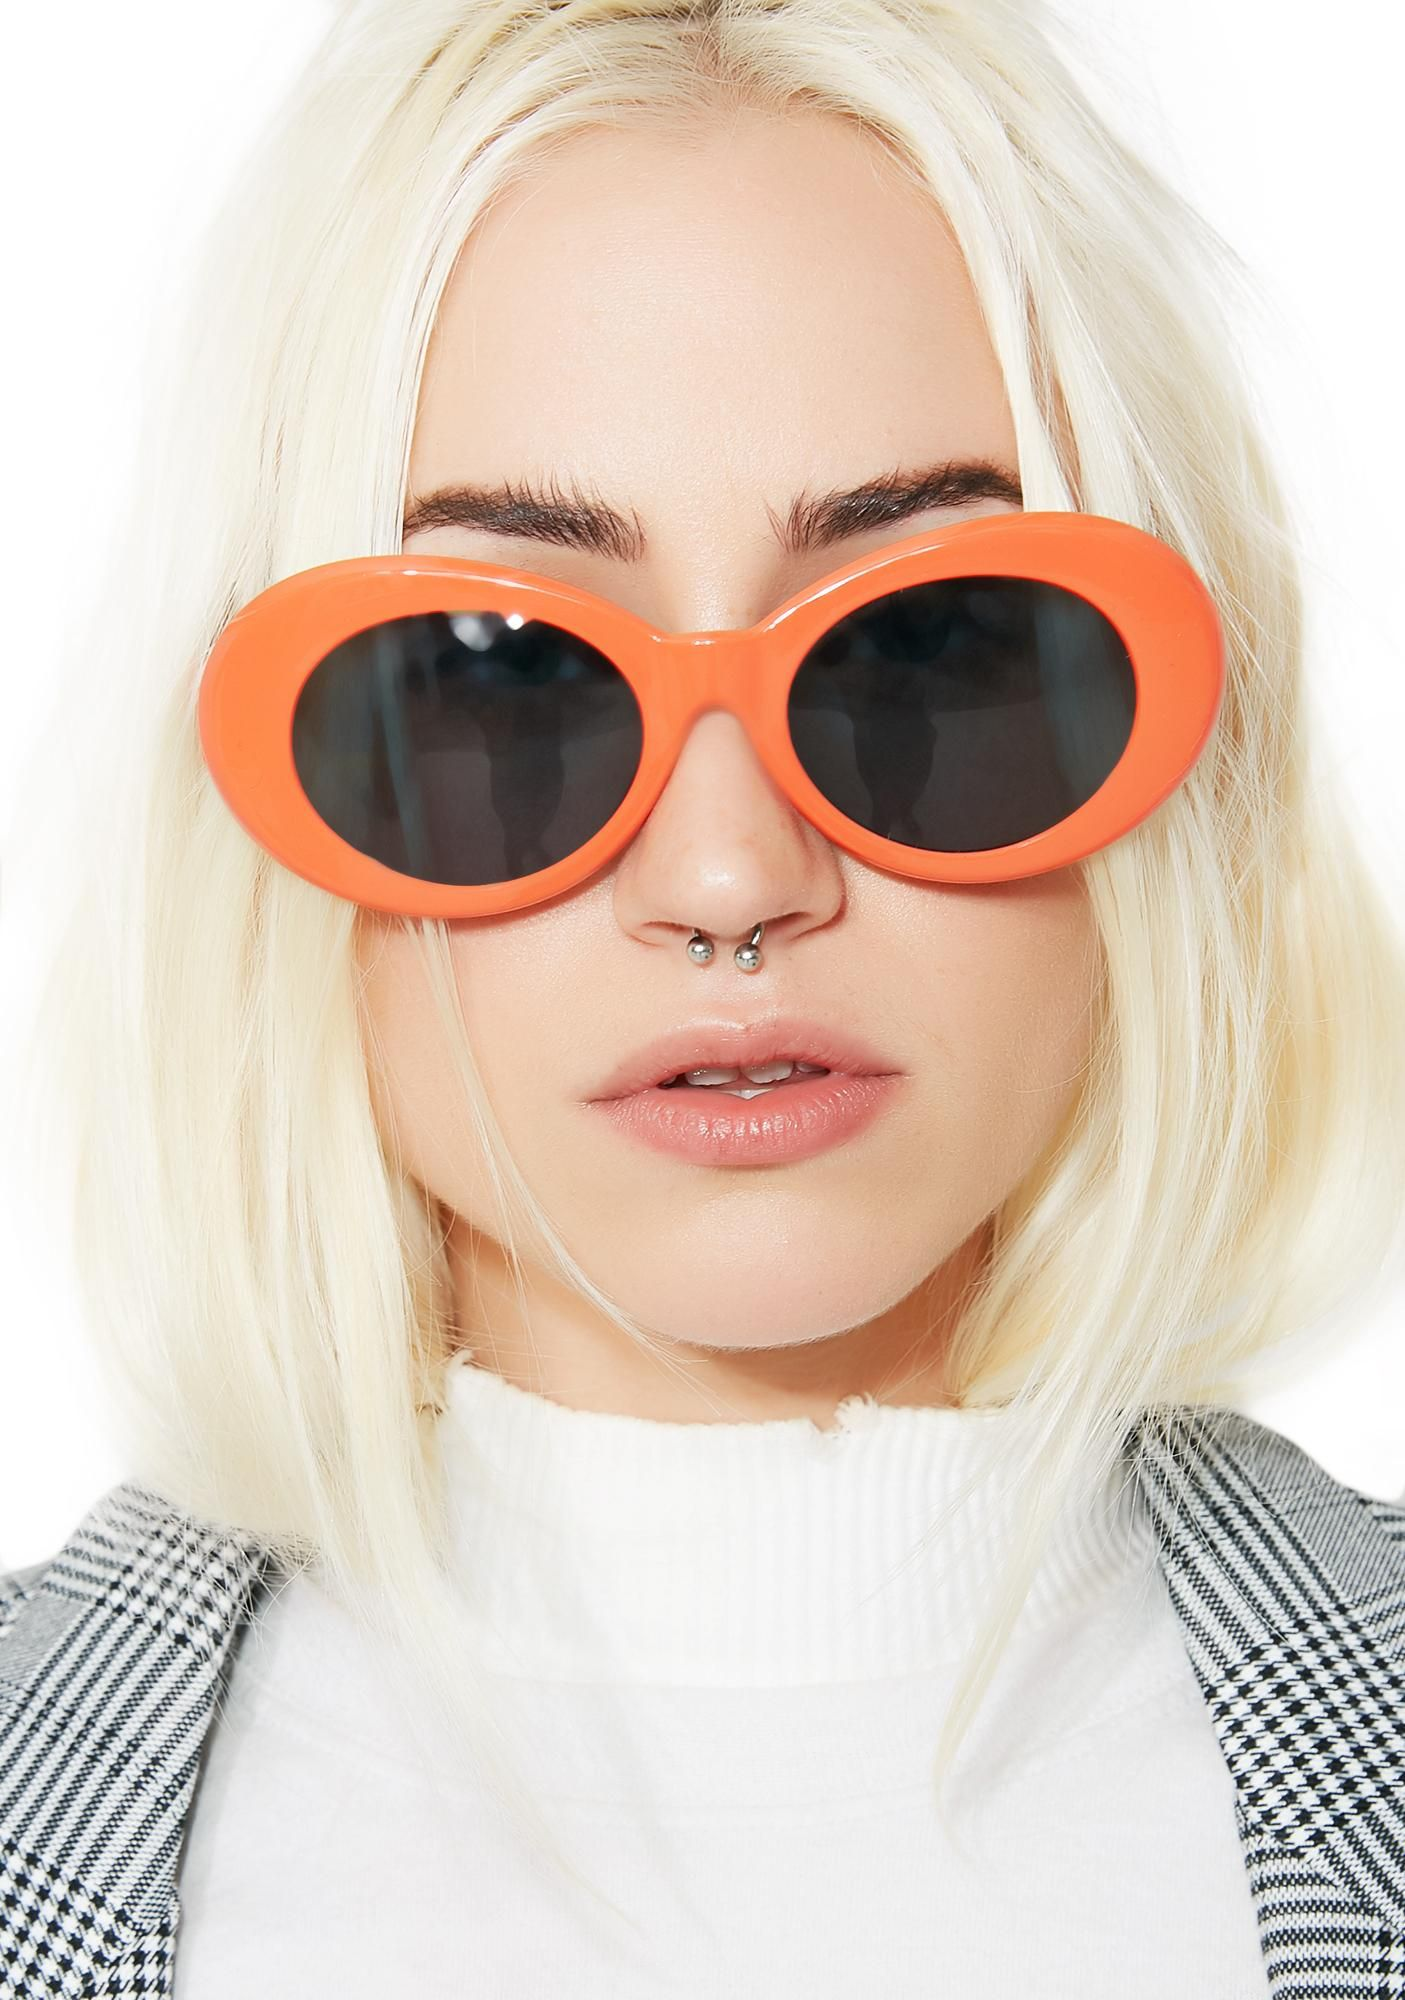 3910e1b70a Petals and Peacocks Orange Nevermind Sunglasses will make sure you stand  out. These dope af sunnies have bright orange frames and dark gray lenses.